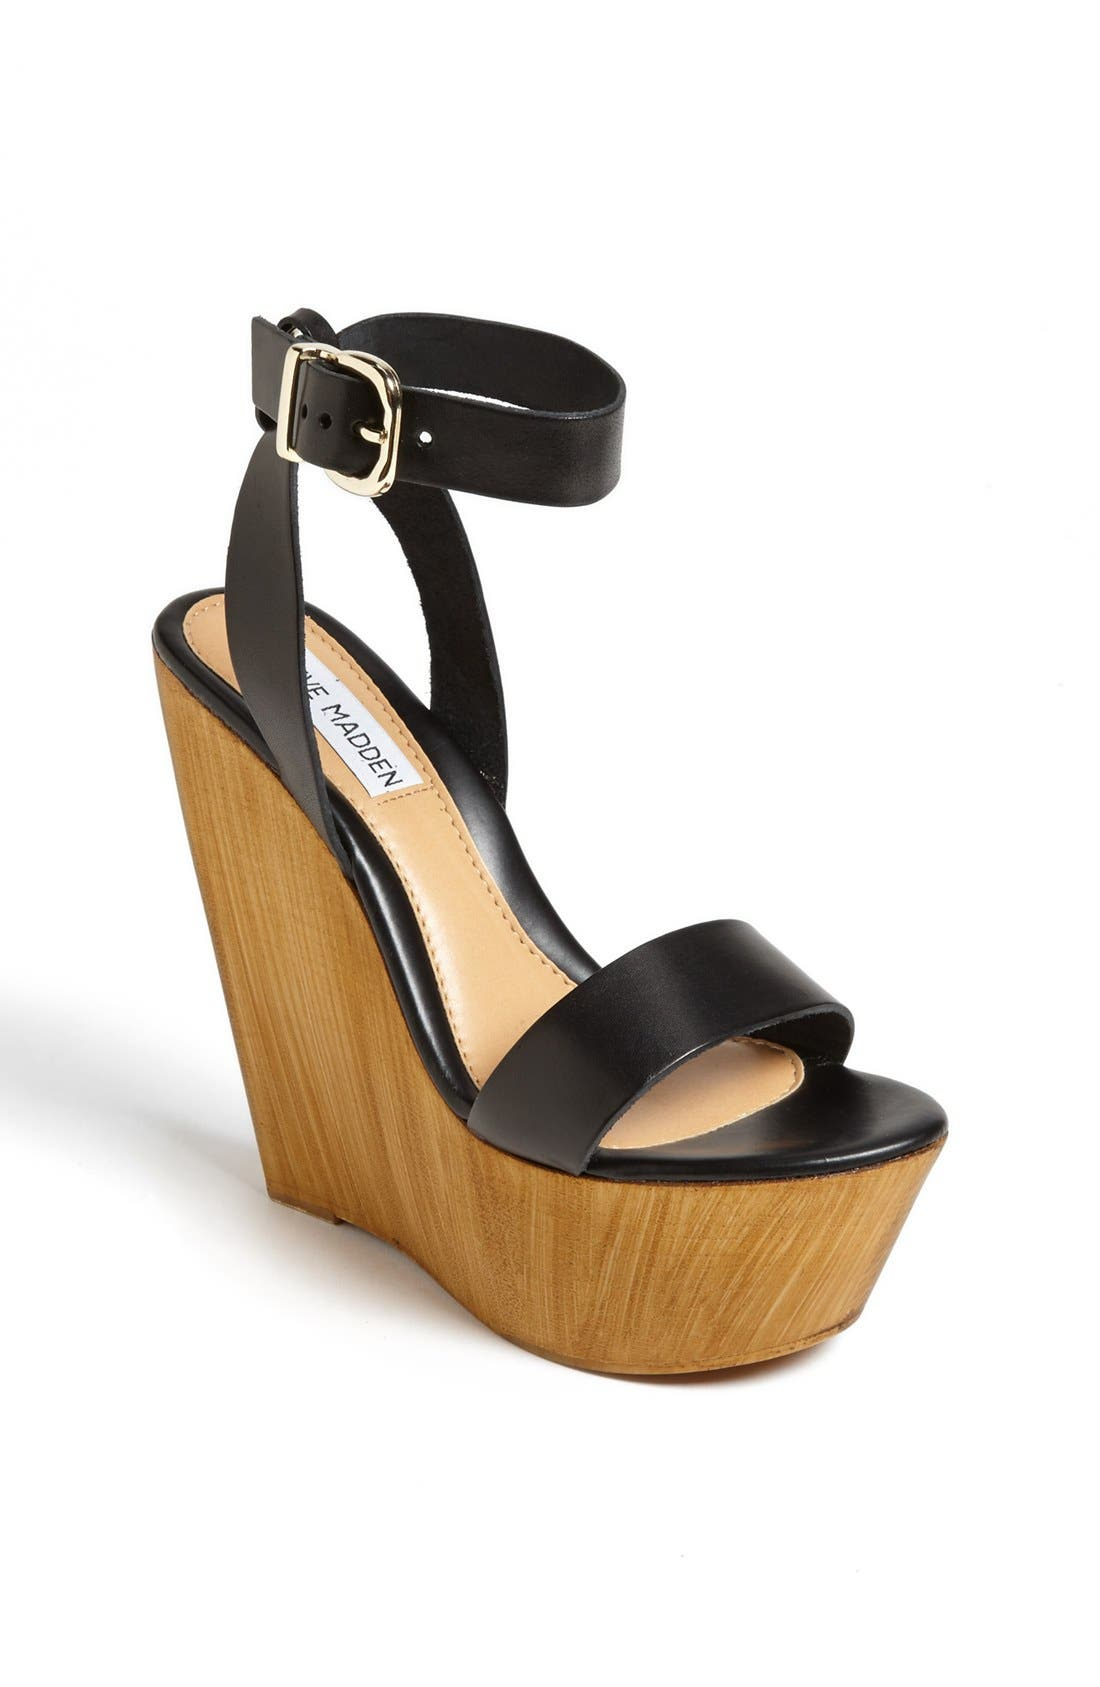 Alternate Image 1 Selected - Steve Madden 'Beachy' Wedge Sandal